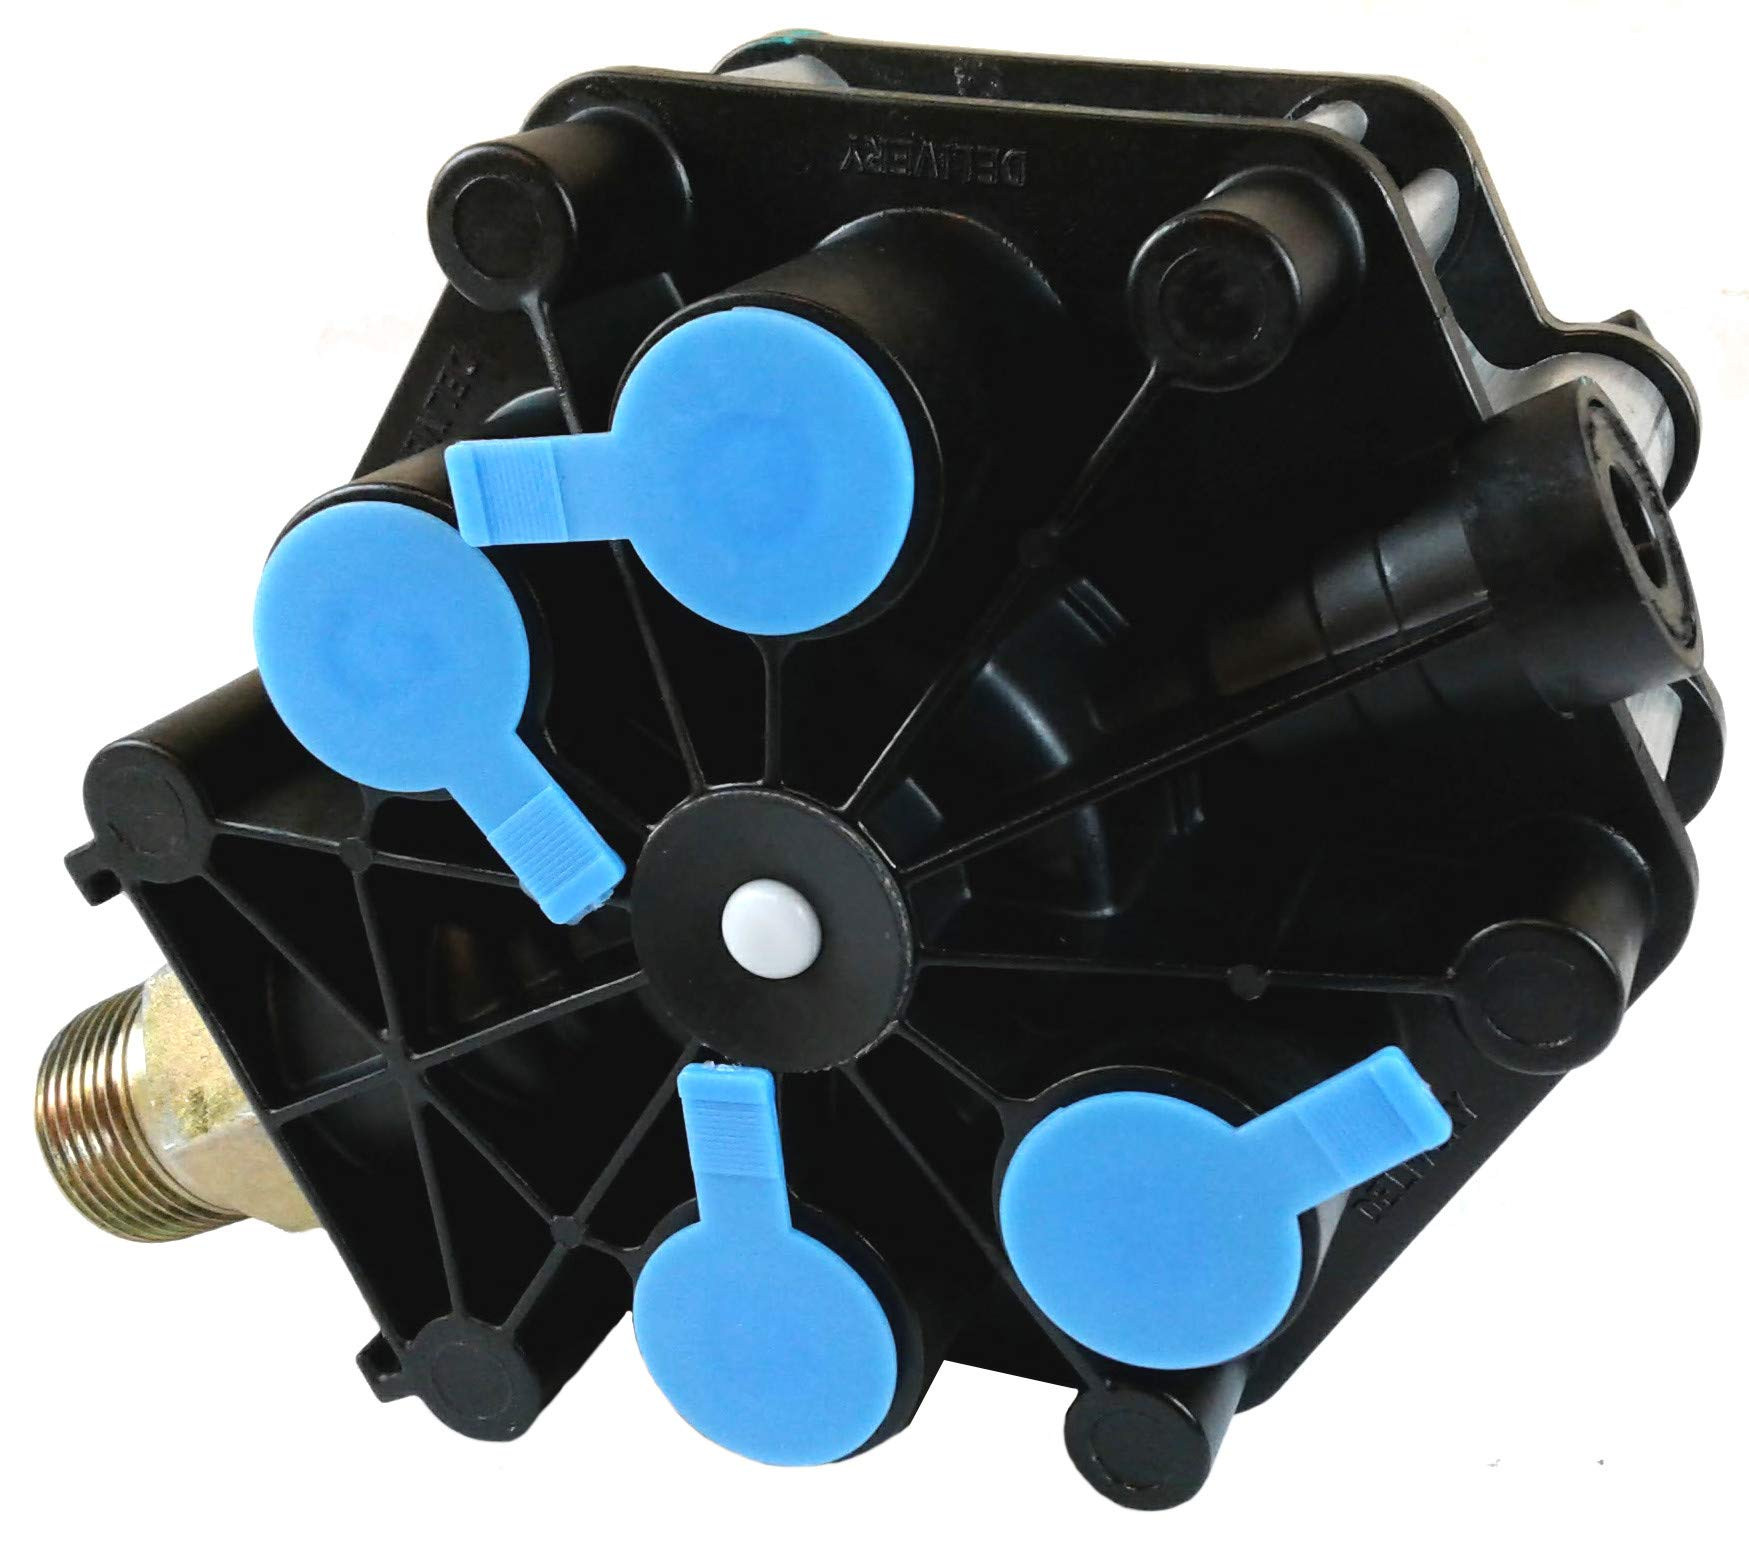 FF2 Full Function Trailer Brake Valve - 3/4'' Reservoir for Heavy Duty Big Rigs by Brianna Auto Parts (BAP) (Image #6)